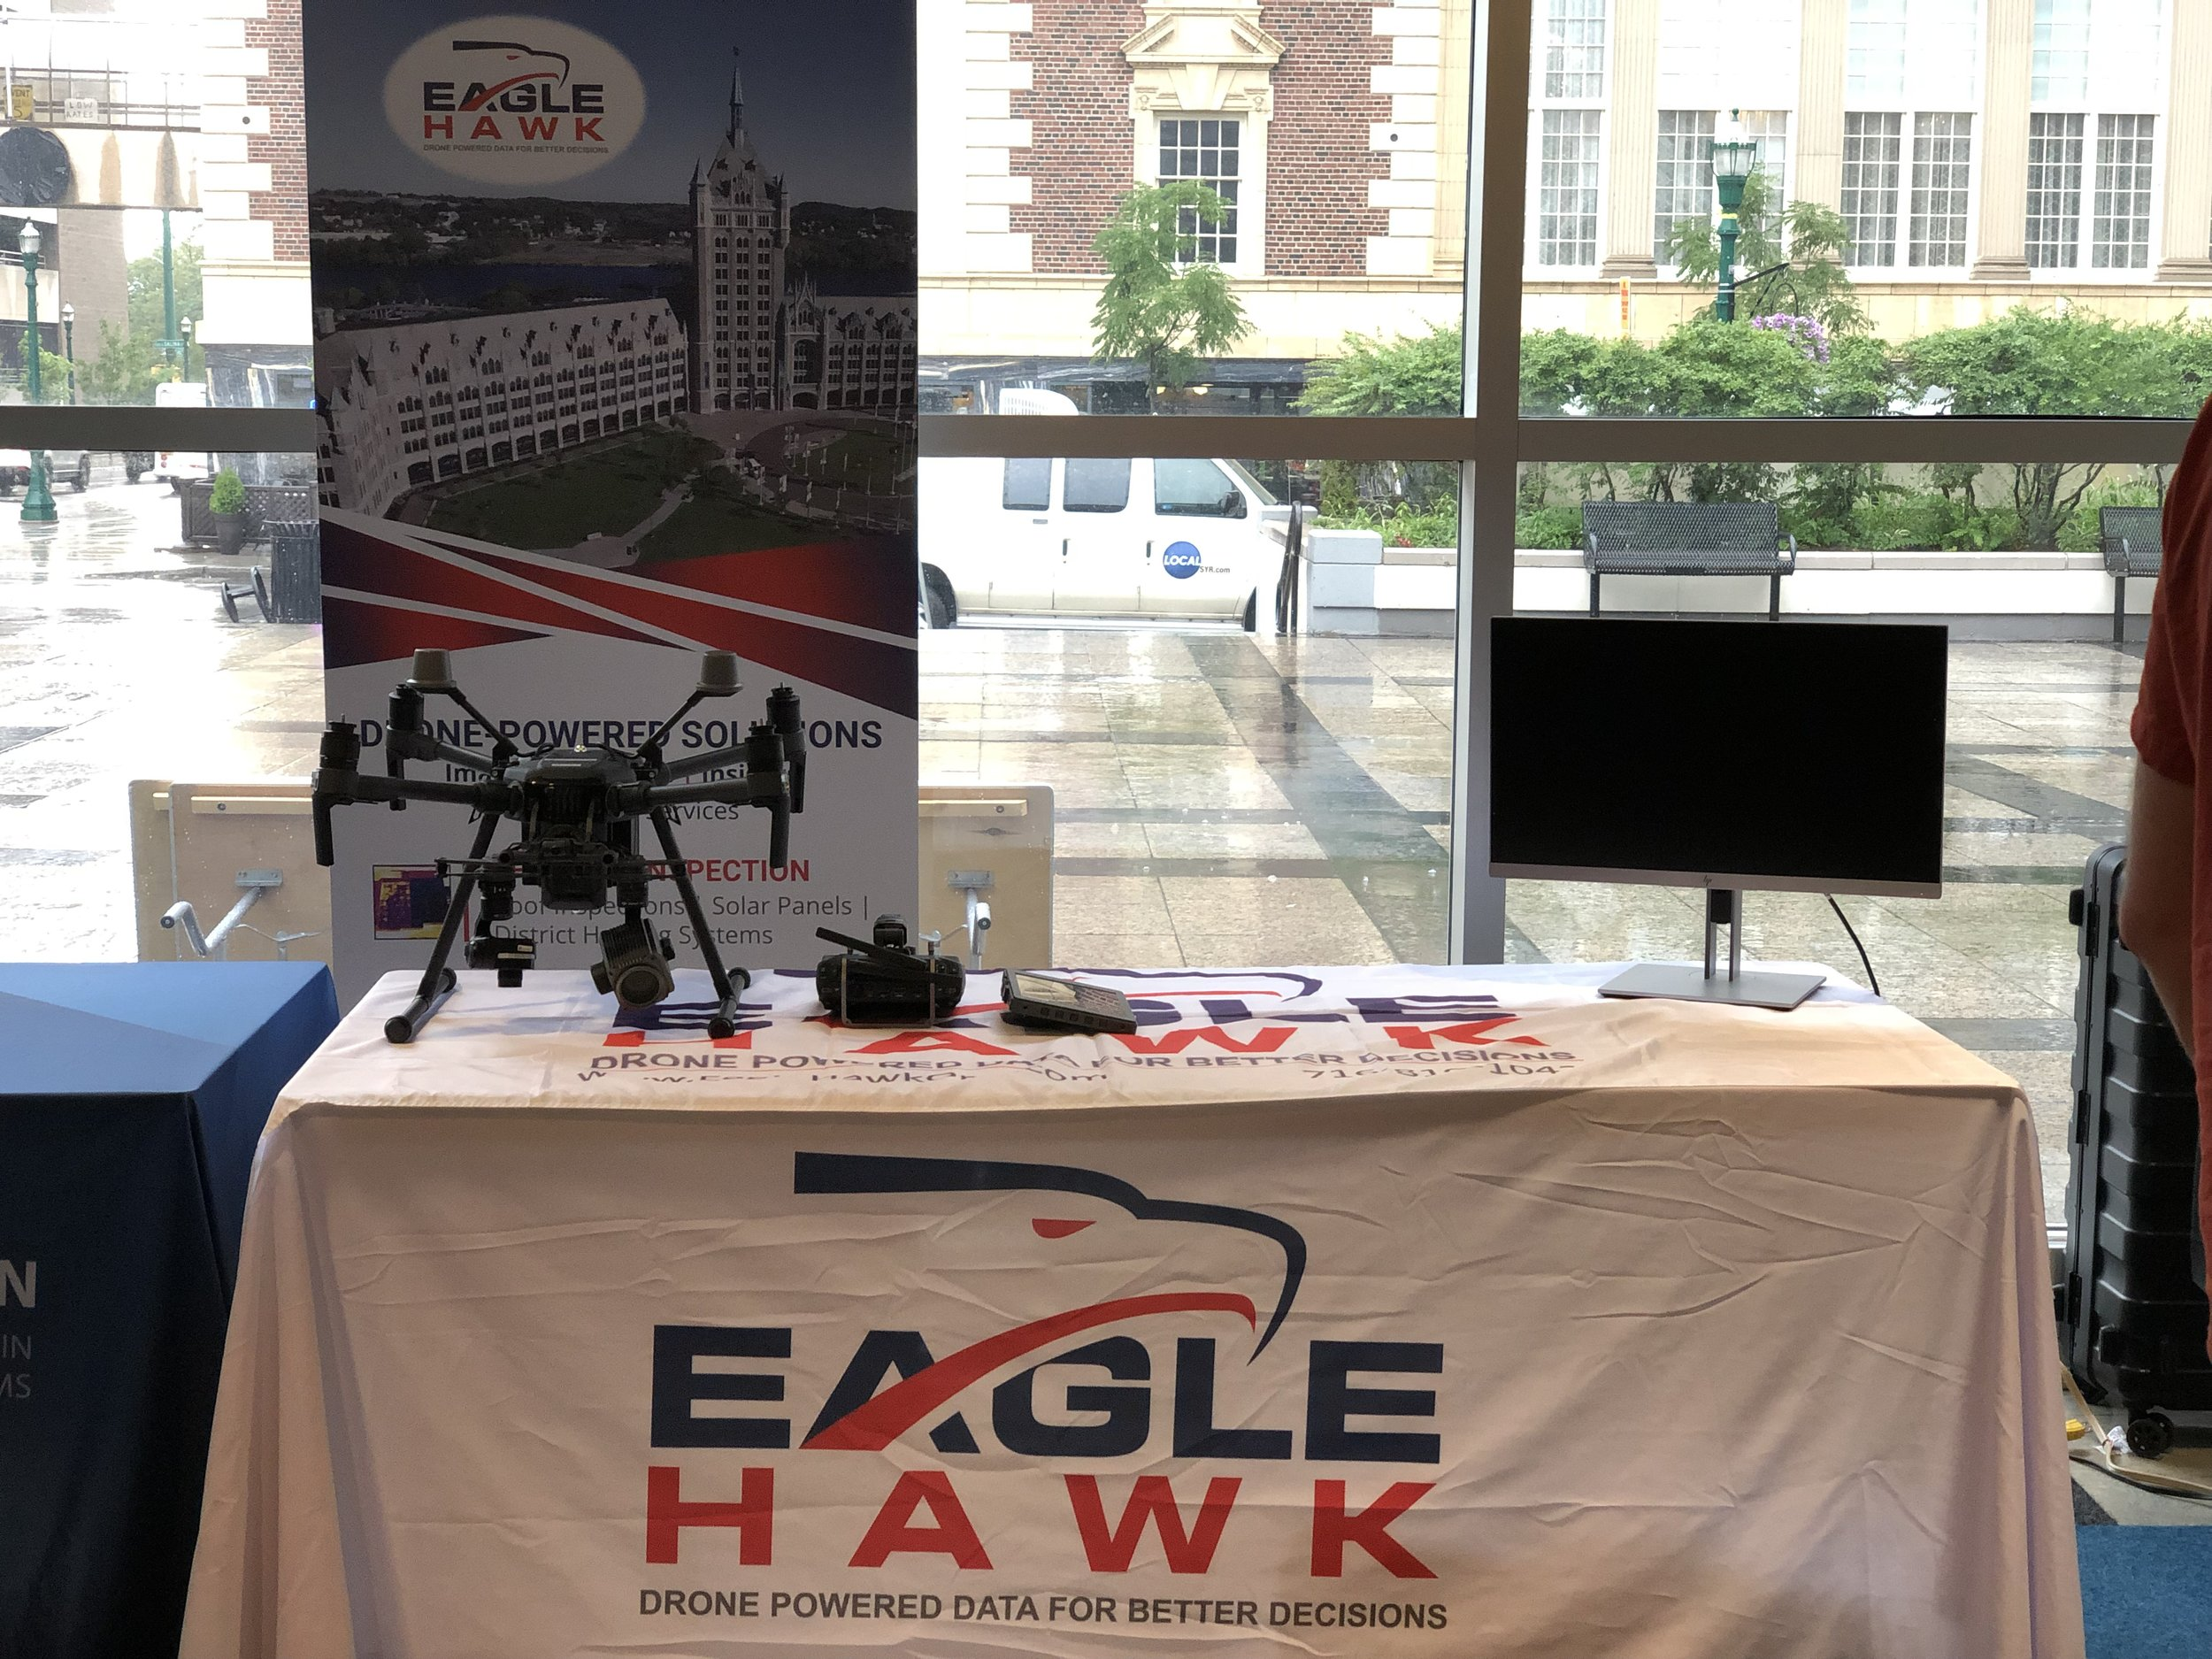 EagleHawk's display table at the Drones Over Downtown community event.